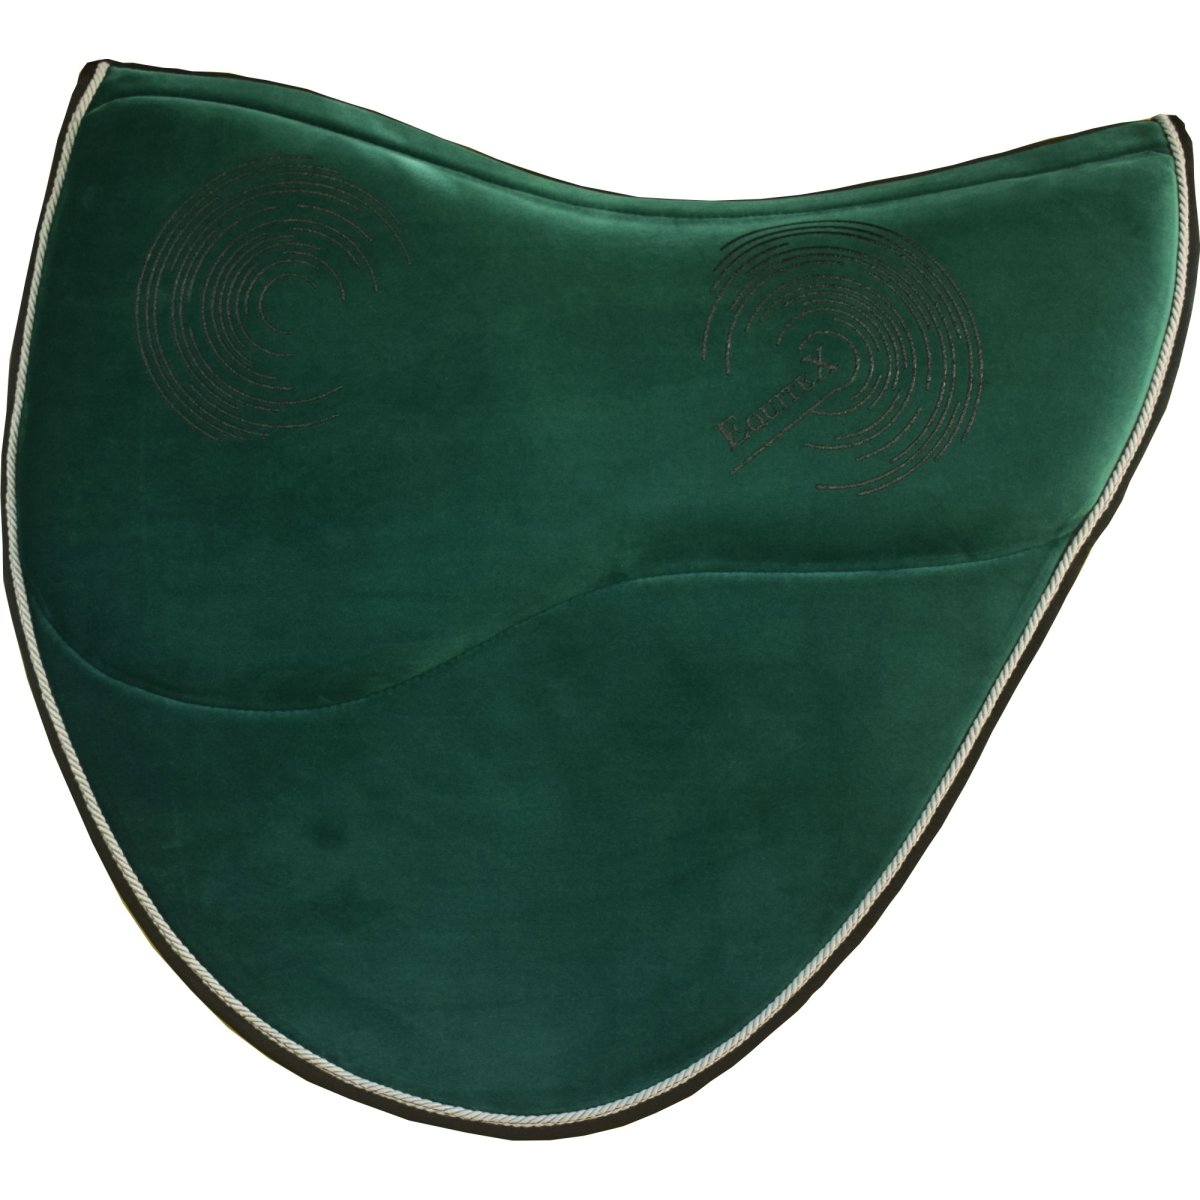 Equitex saddle pads